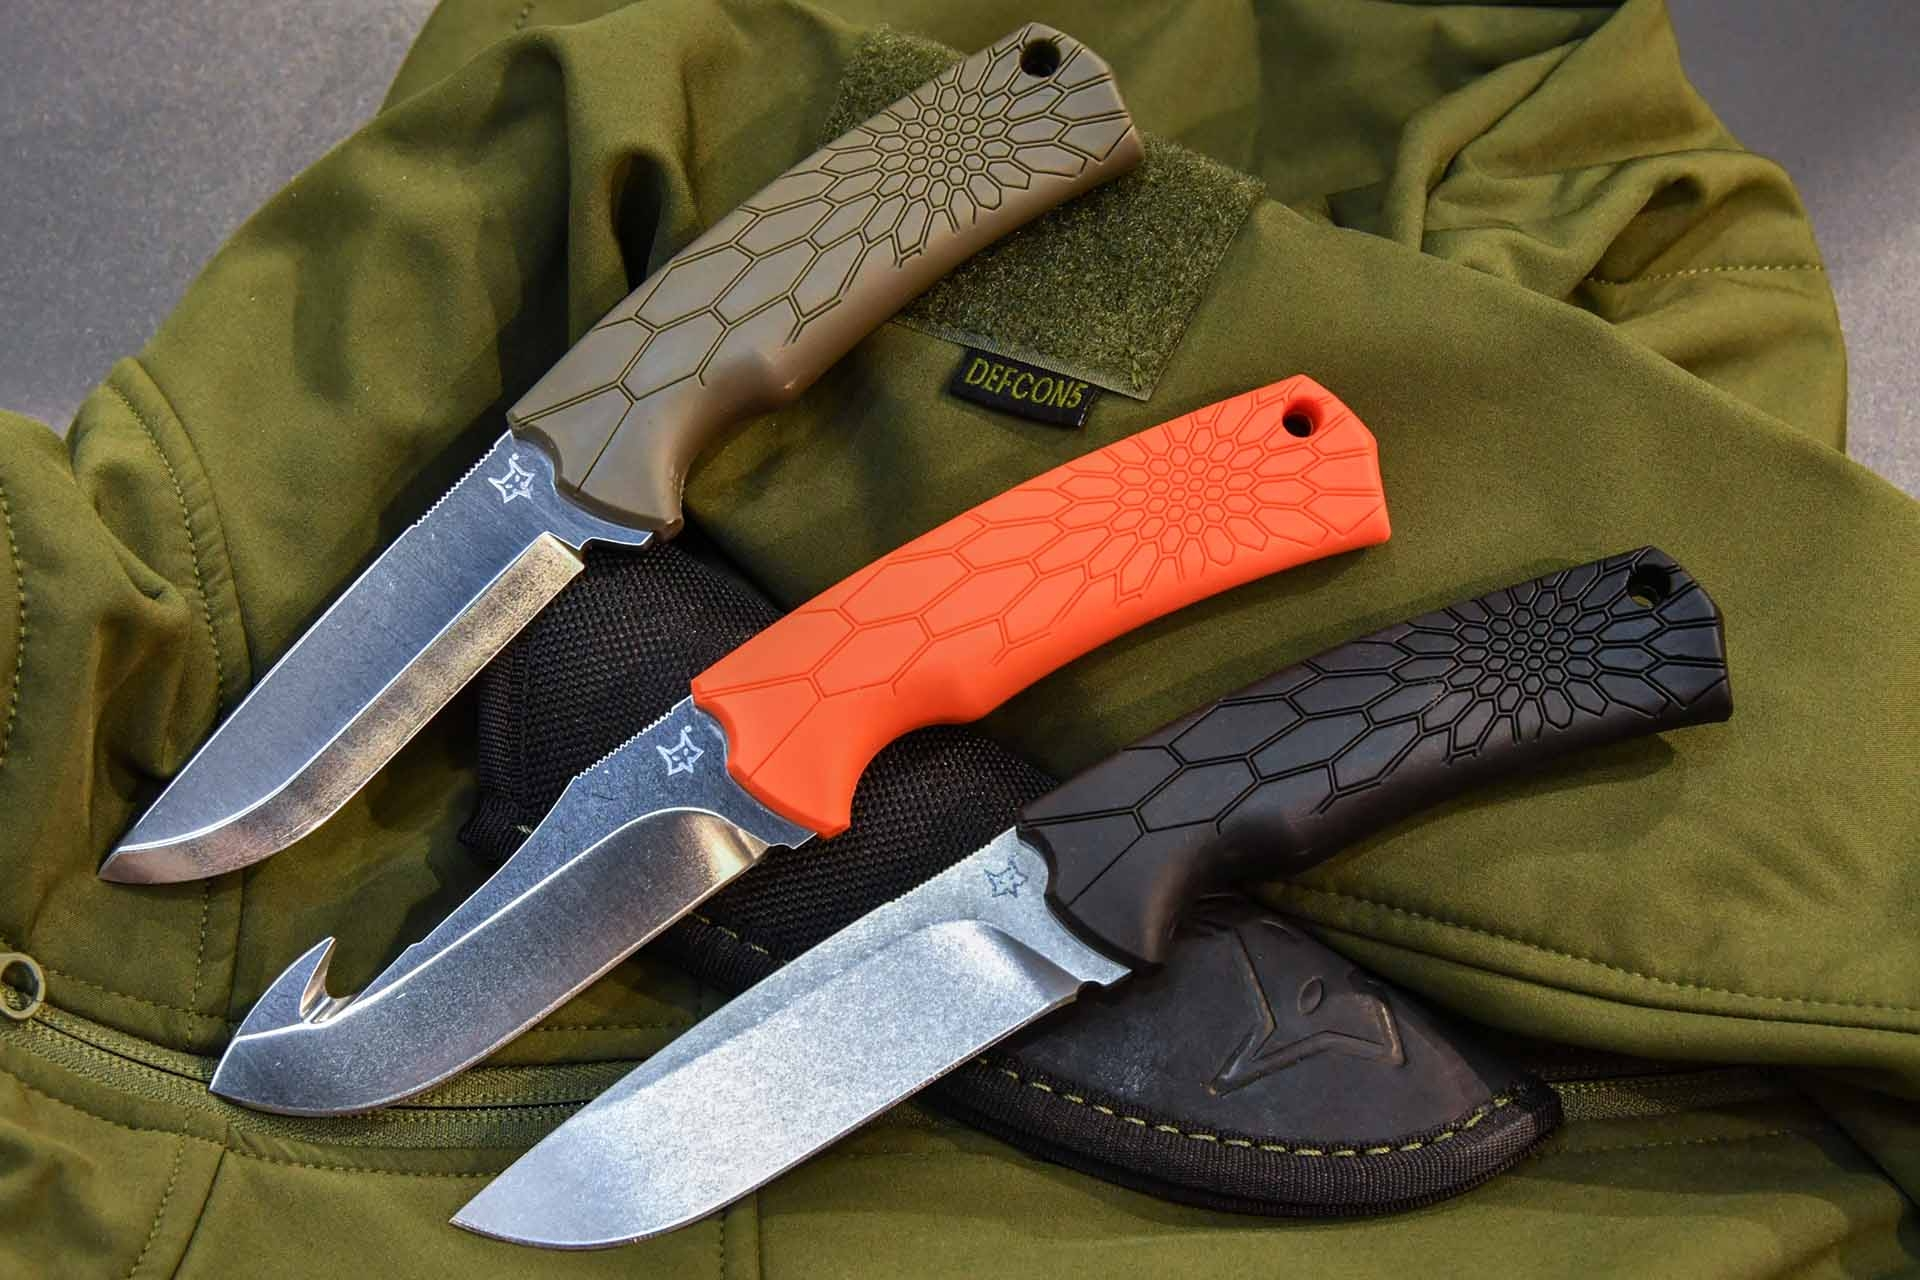 Fox 605, 606 and 607 knives